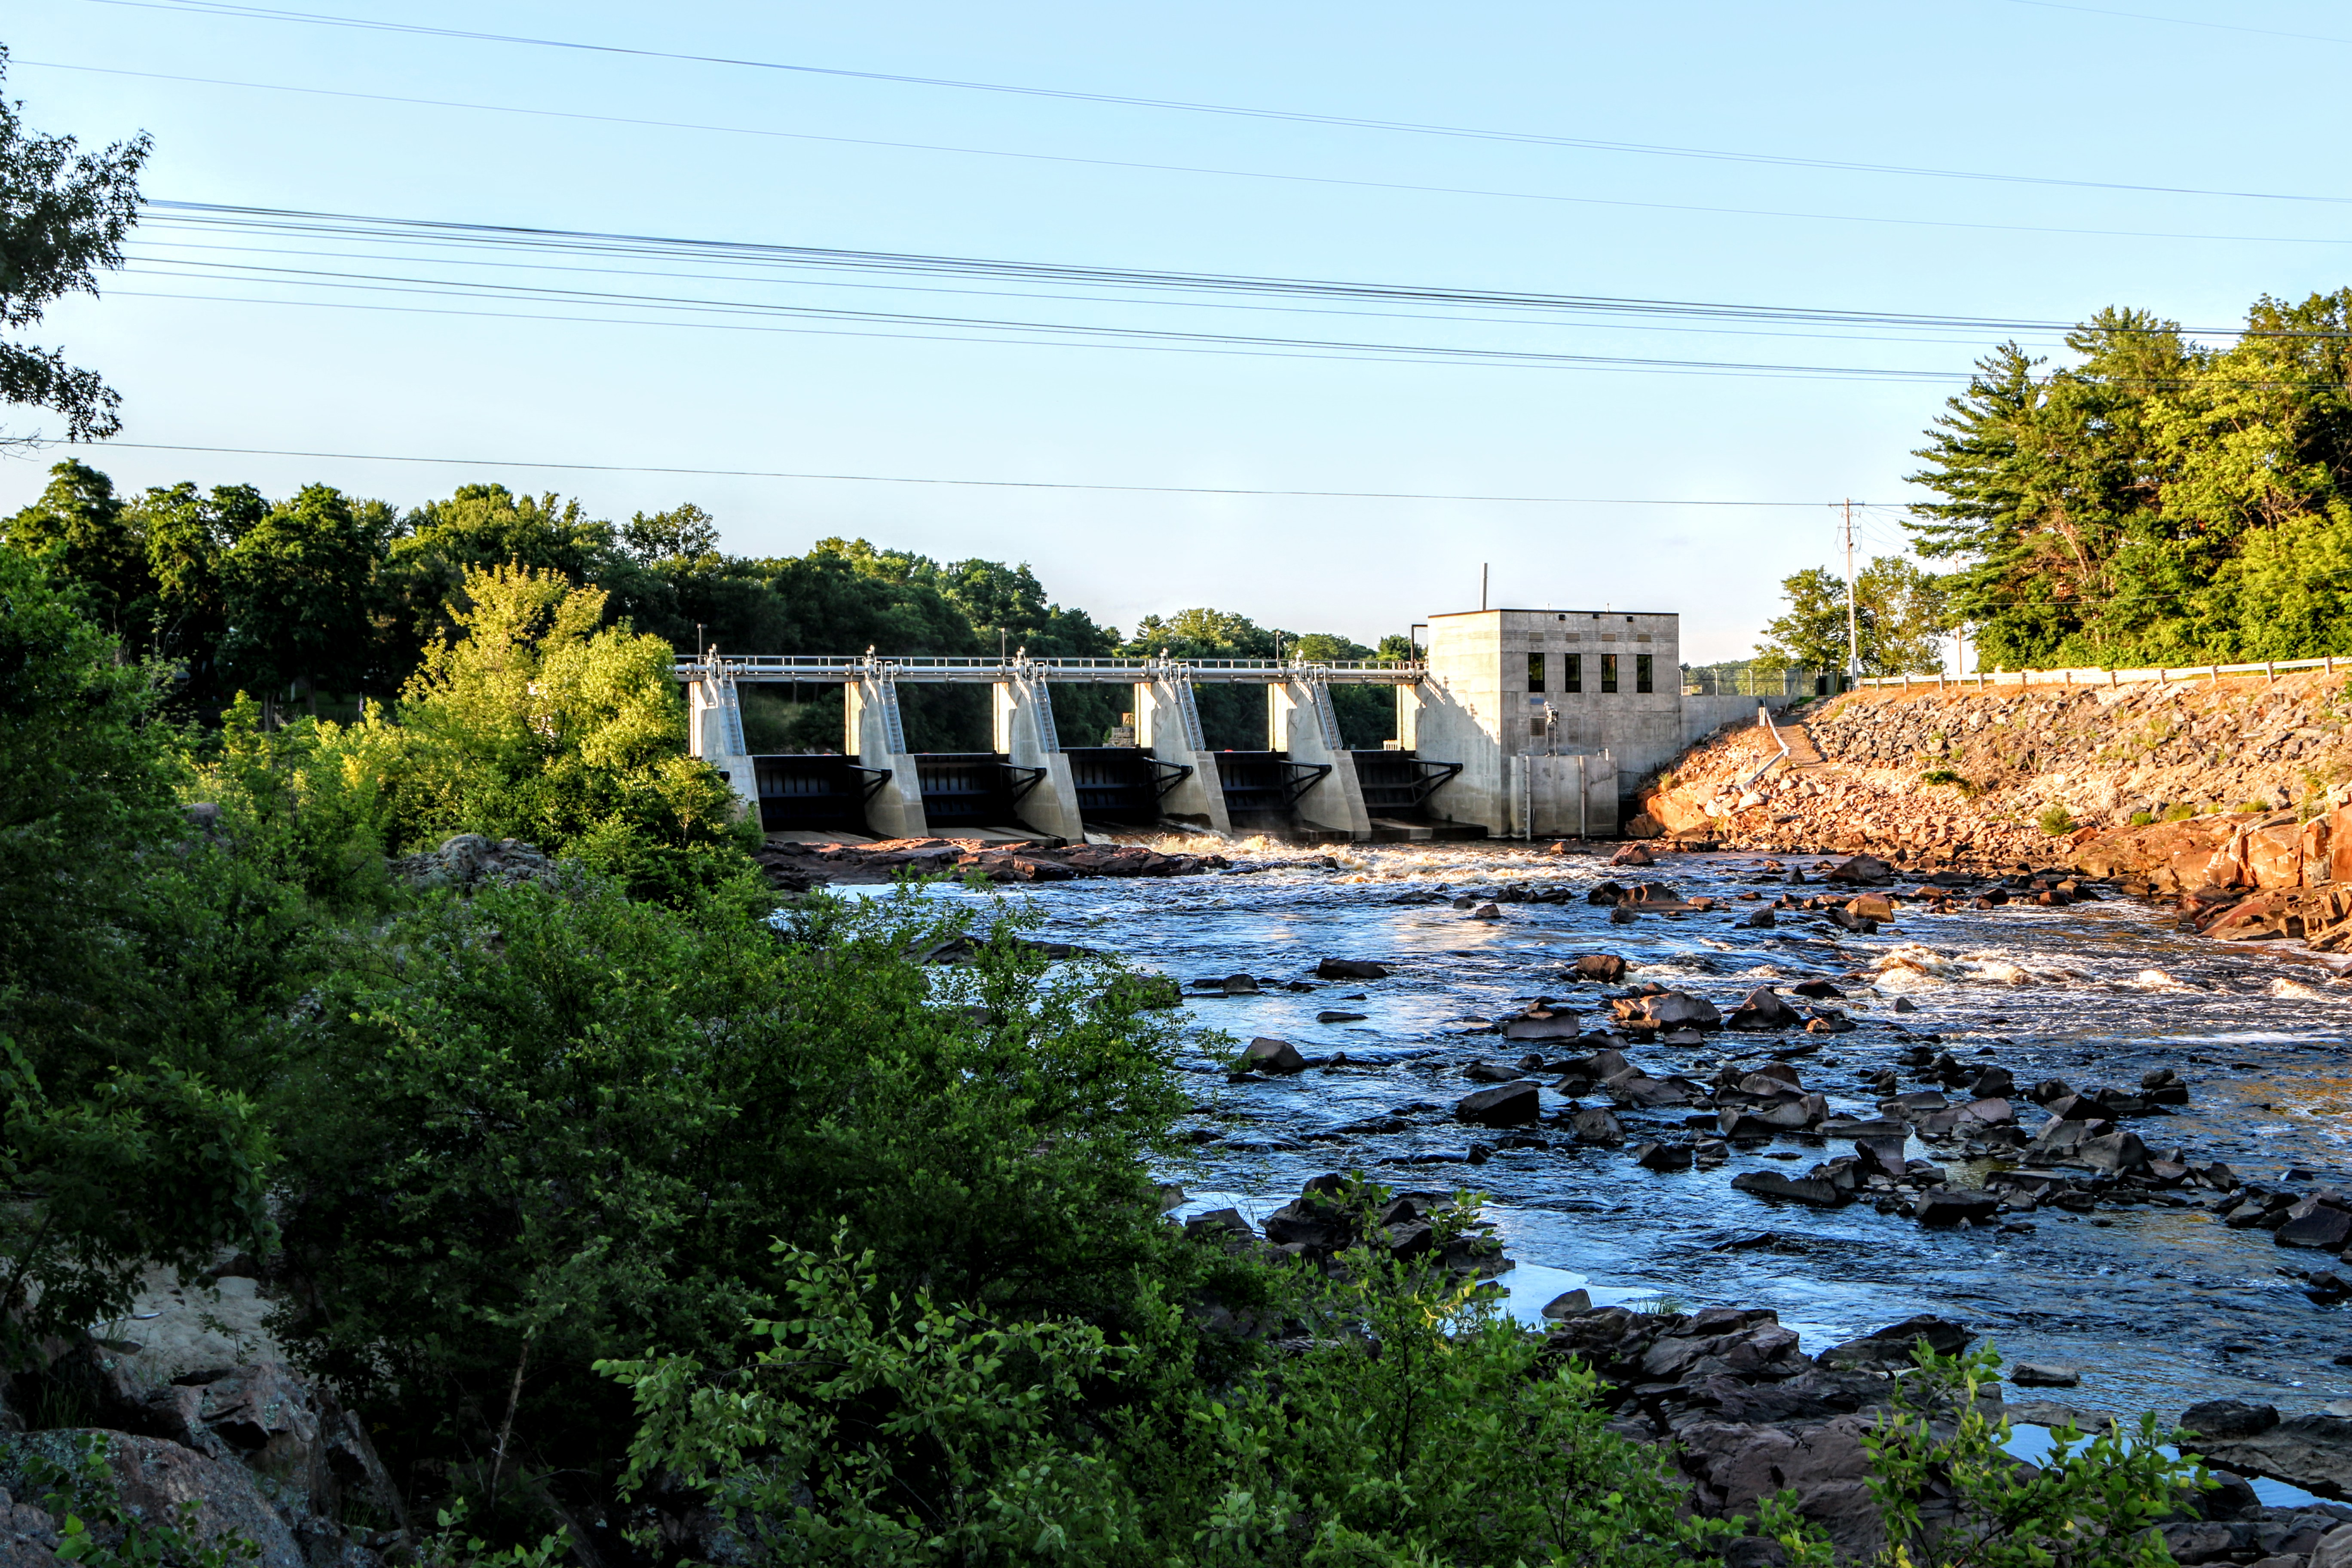 BRF Dam / Photo By Joel Busse